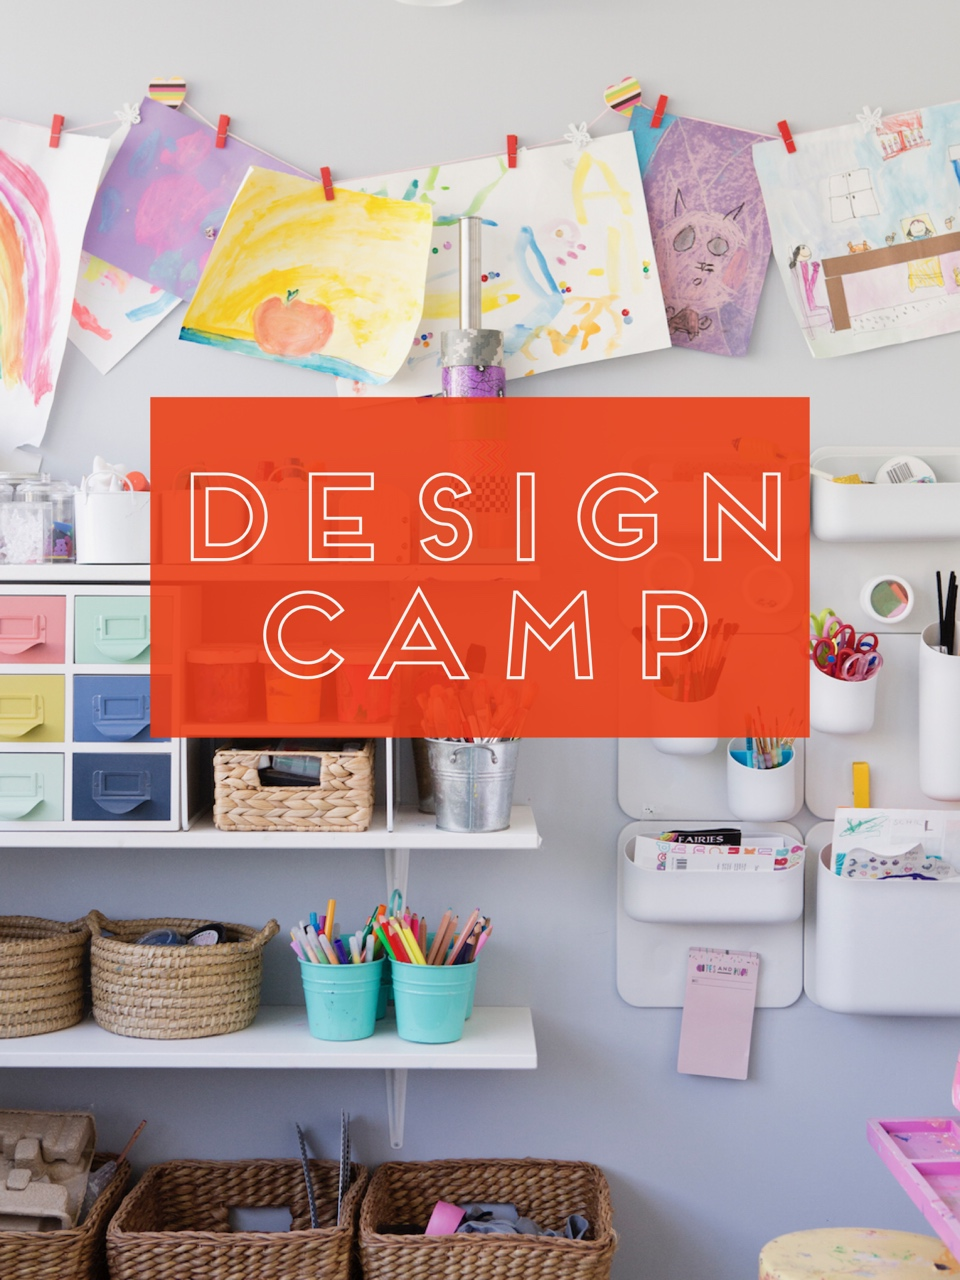 Sign up for Design Camp today!